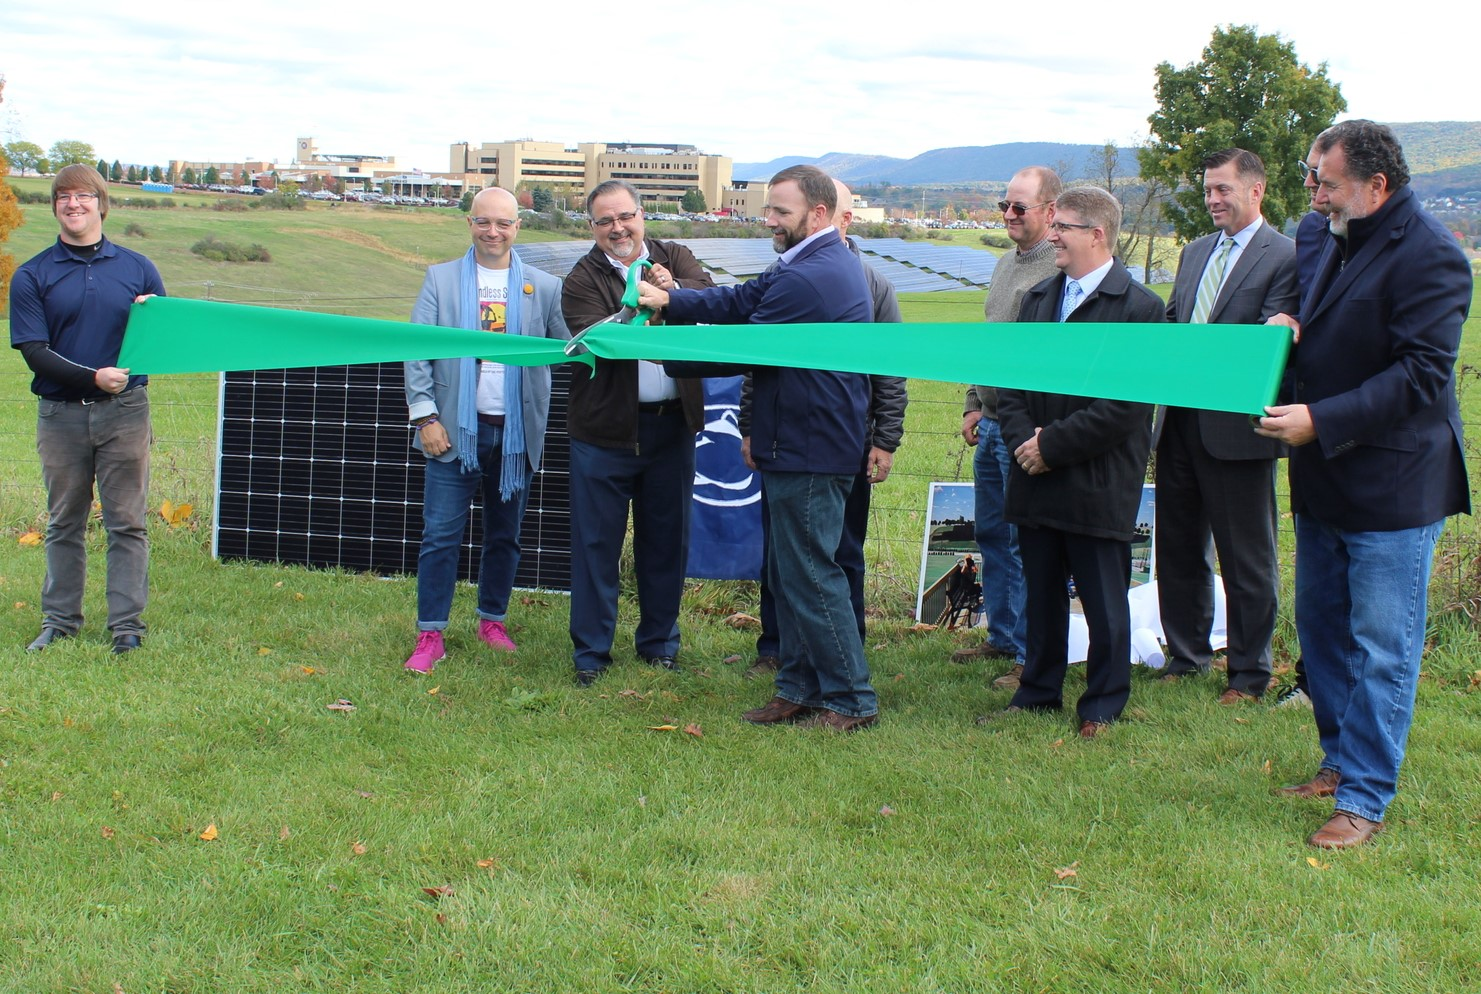 Berwyn Company the Lead Developer on Solar Energy Project That Will Serve as Living Lab at PSU